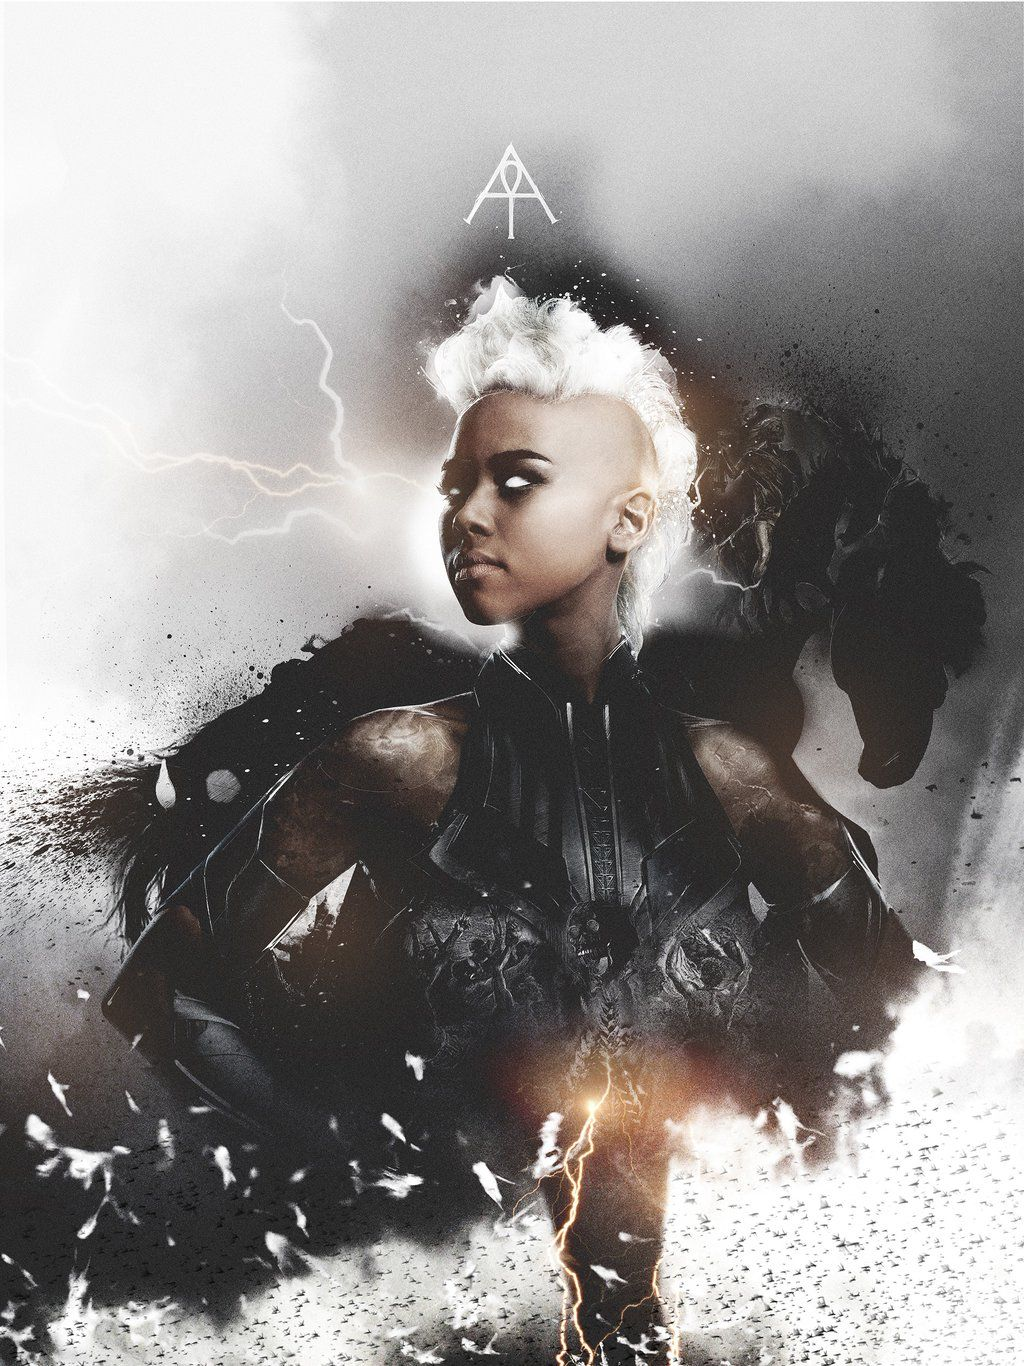 Alexandra Shipp Illustration: X-Men